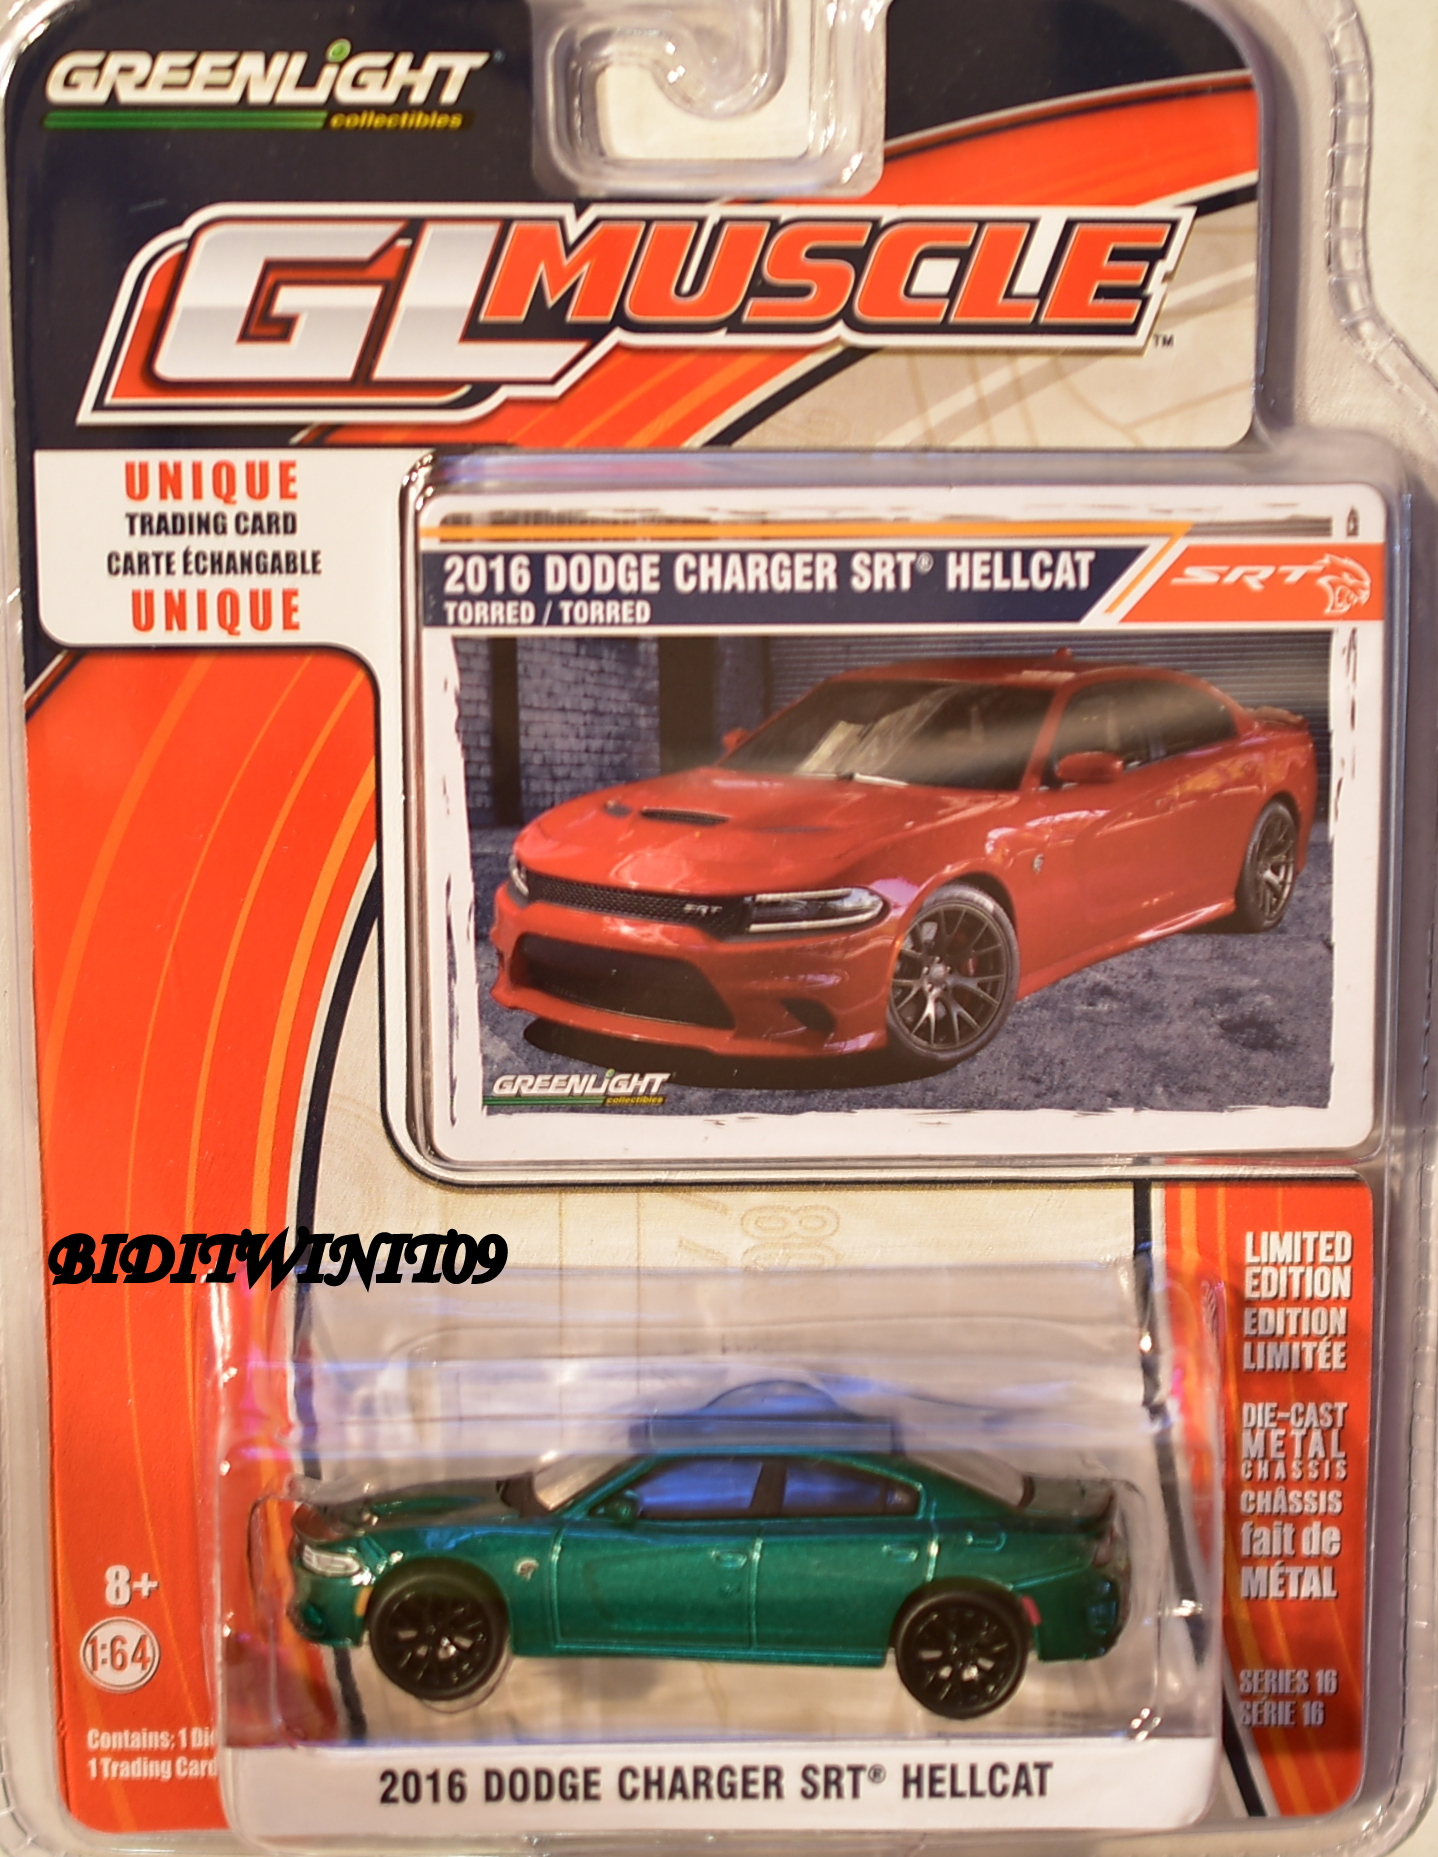 GREENLIGHT GLMUSCLE DODGE CHARGER SRT HELLCAT SERIES 16 GREEN MACHINE E+